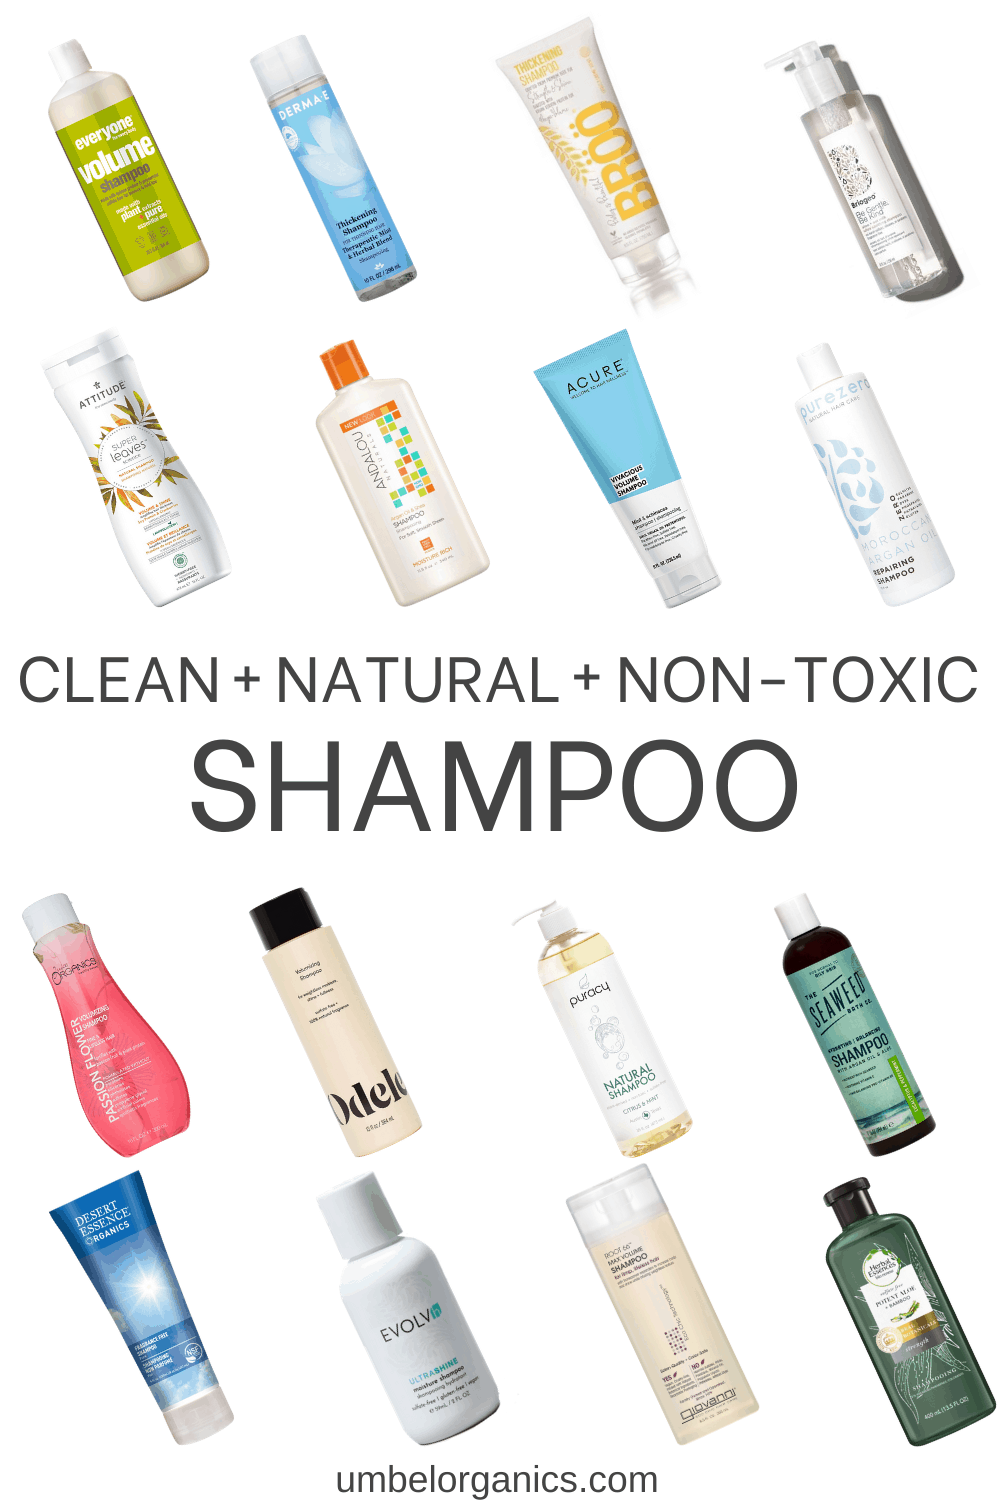 Clean, natural and non-toxic shampoo brands tested and reviewed